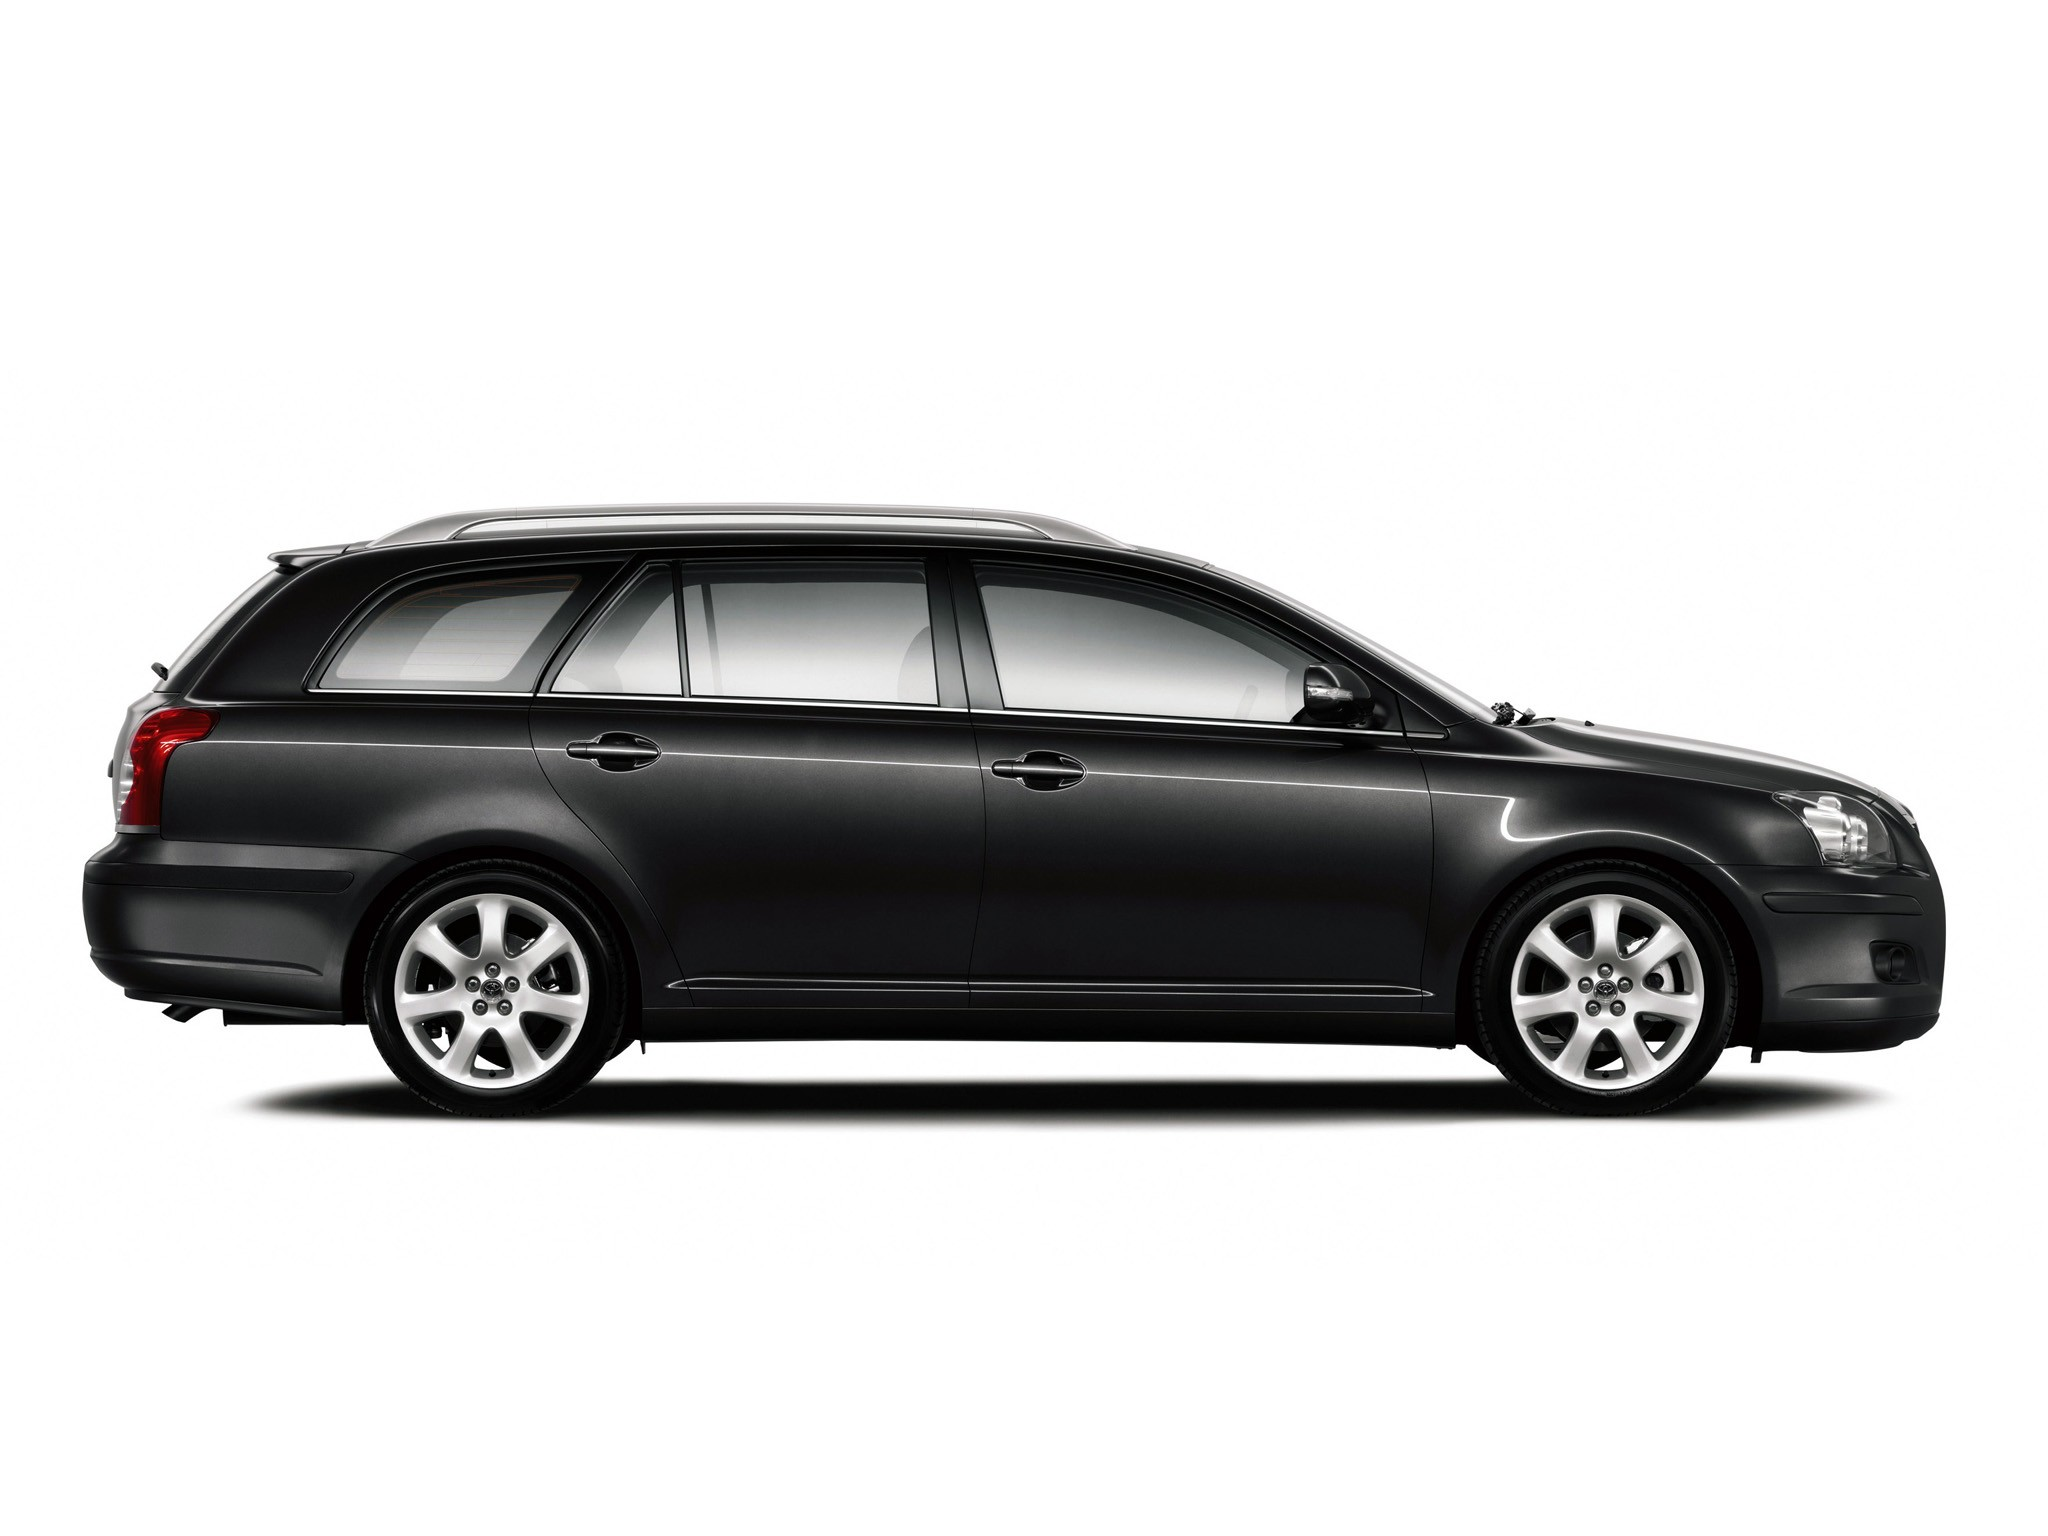 toyota avensis wagon 2006 2007 2008 autoevolution. Black Bedroom Furniture Sets. Home Design Ideas